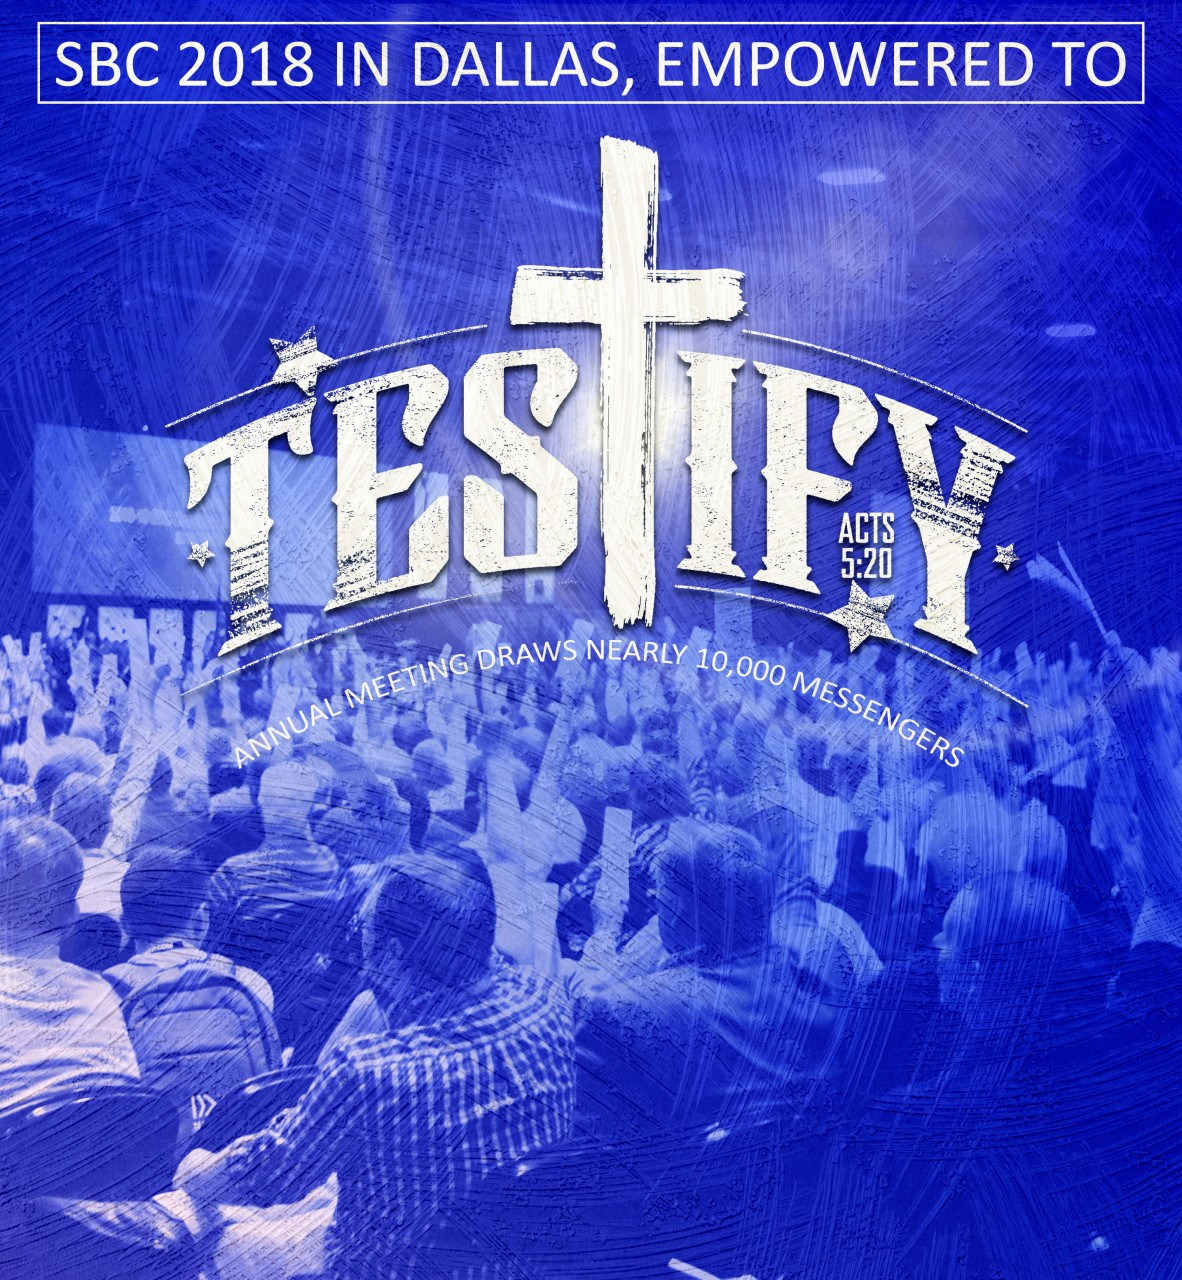 SBC 2018 in Dallas, empowered to 'testify': Annual Meeting draws nearly 10,000 messengers